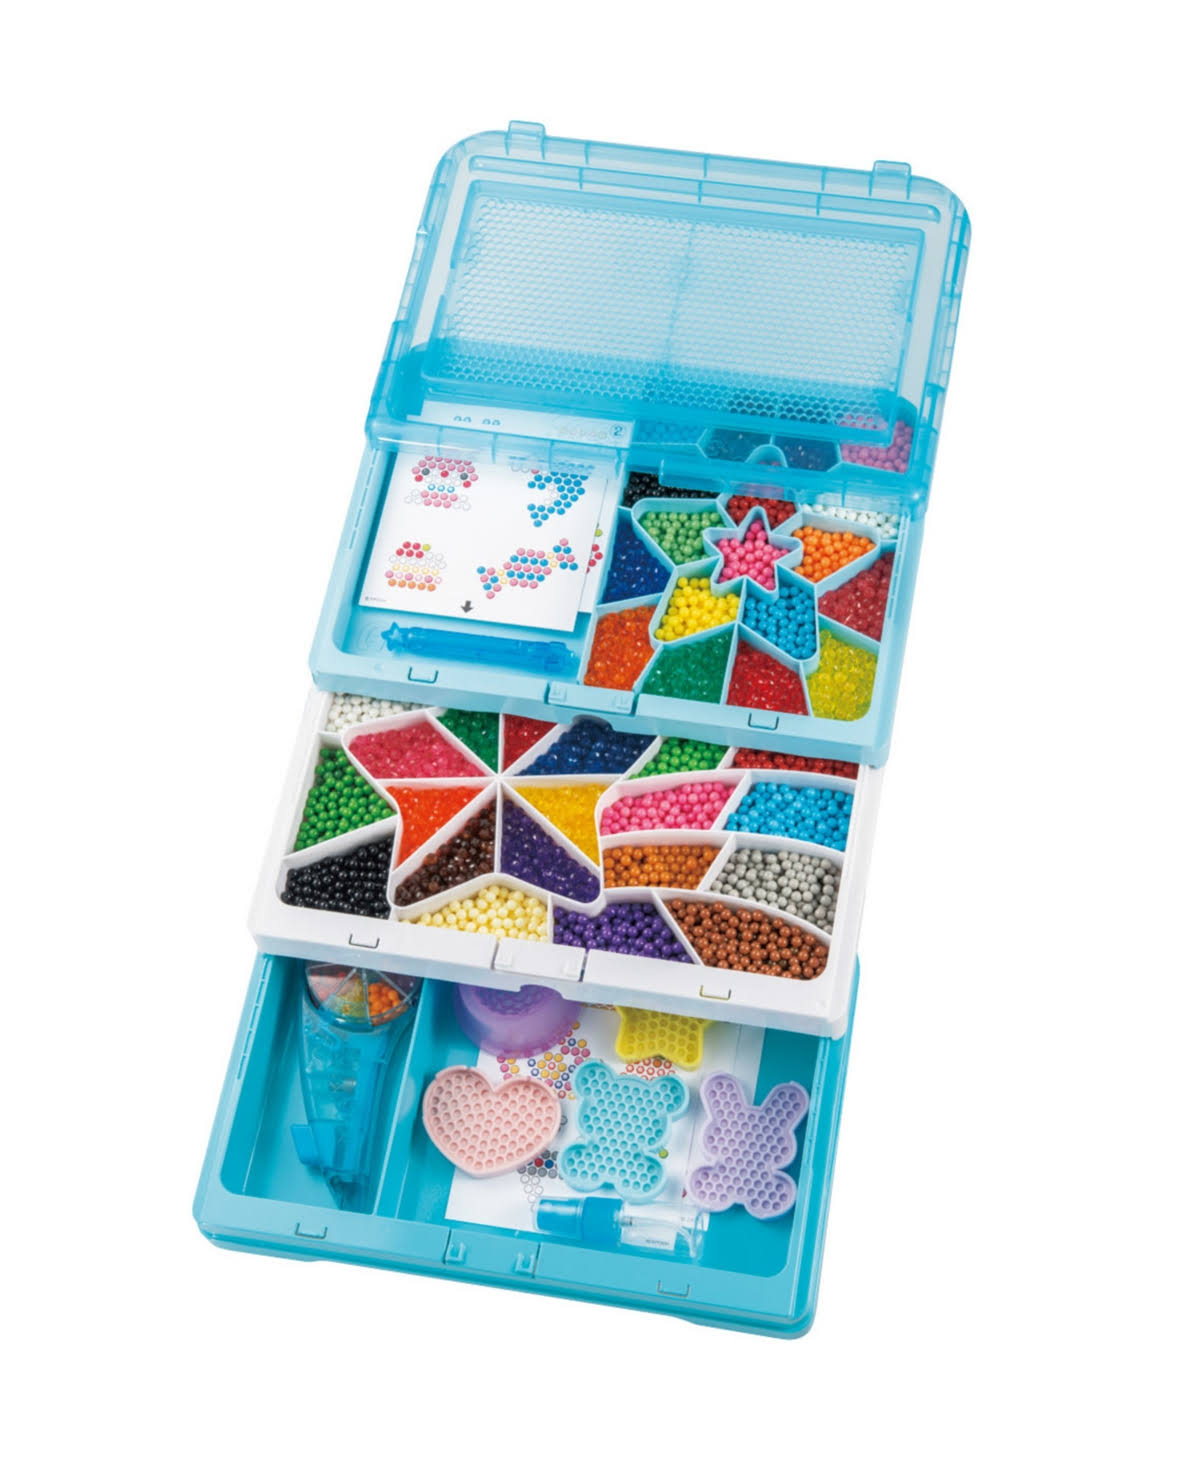 International Playthings Aquabeads - Deluxe Studio